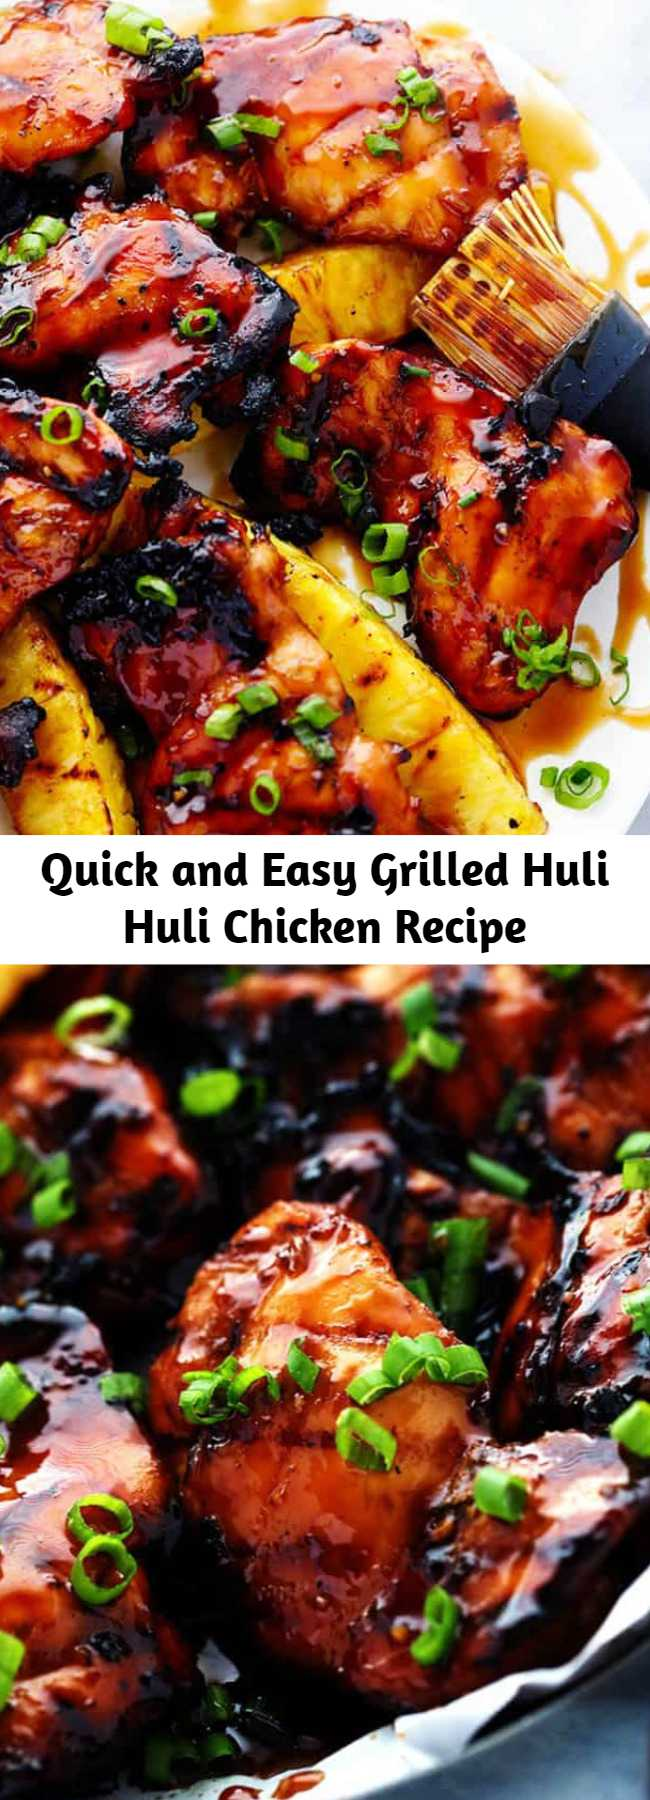 Quick and Easy Grilled Huli Huli Chicken Recipe - Grilled Huli Huli Chicken is a five star recipe! The marinade is quick and easy and full of such amazing flavor! You will make this again and again!